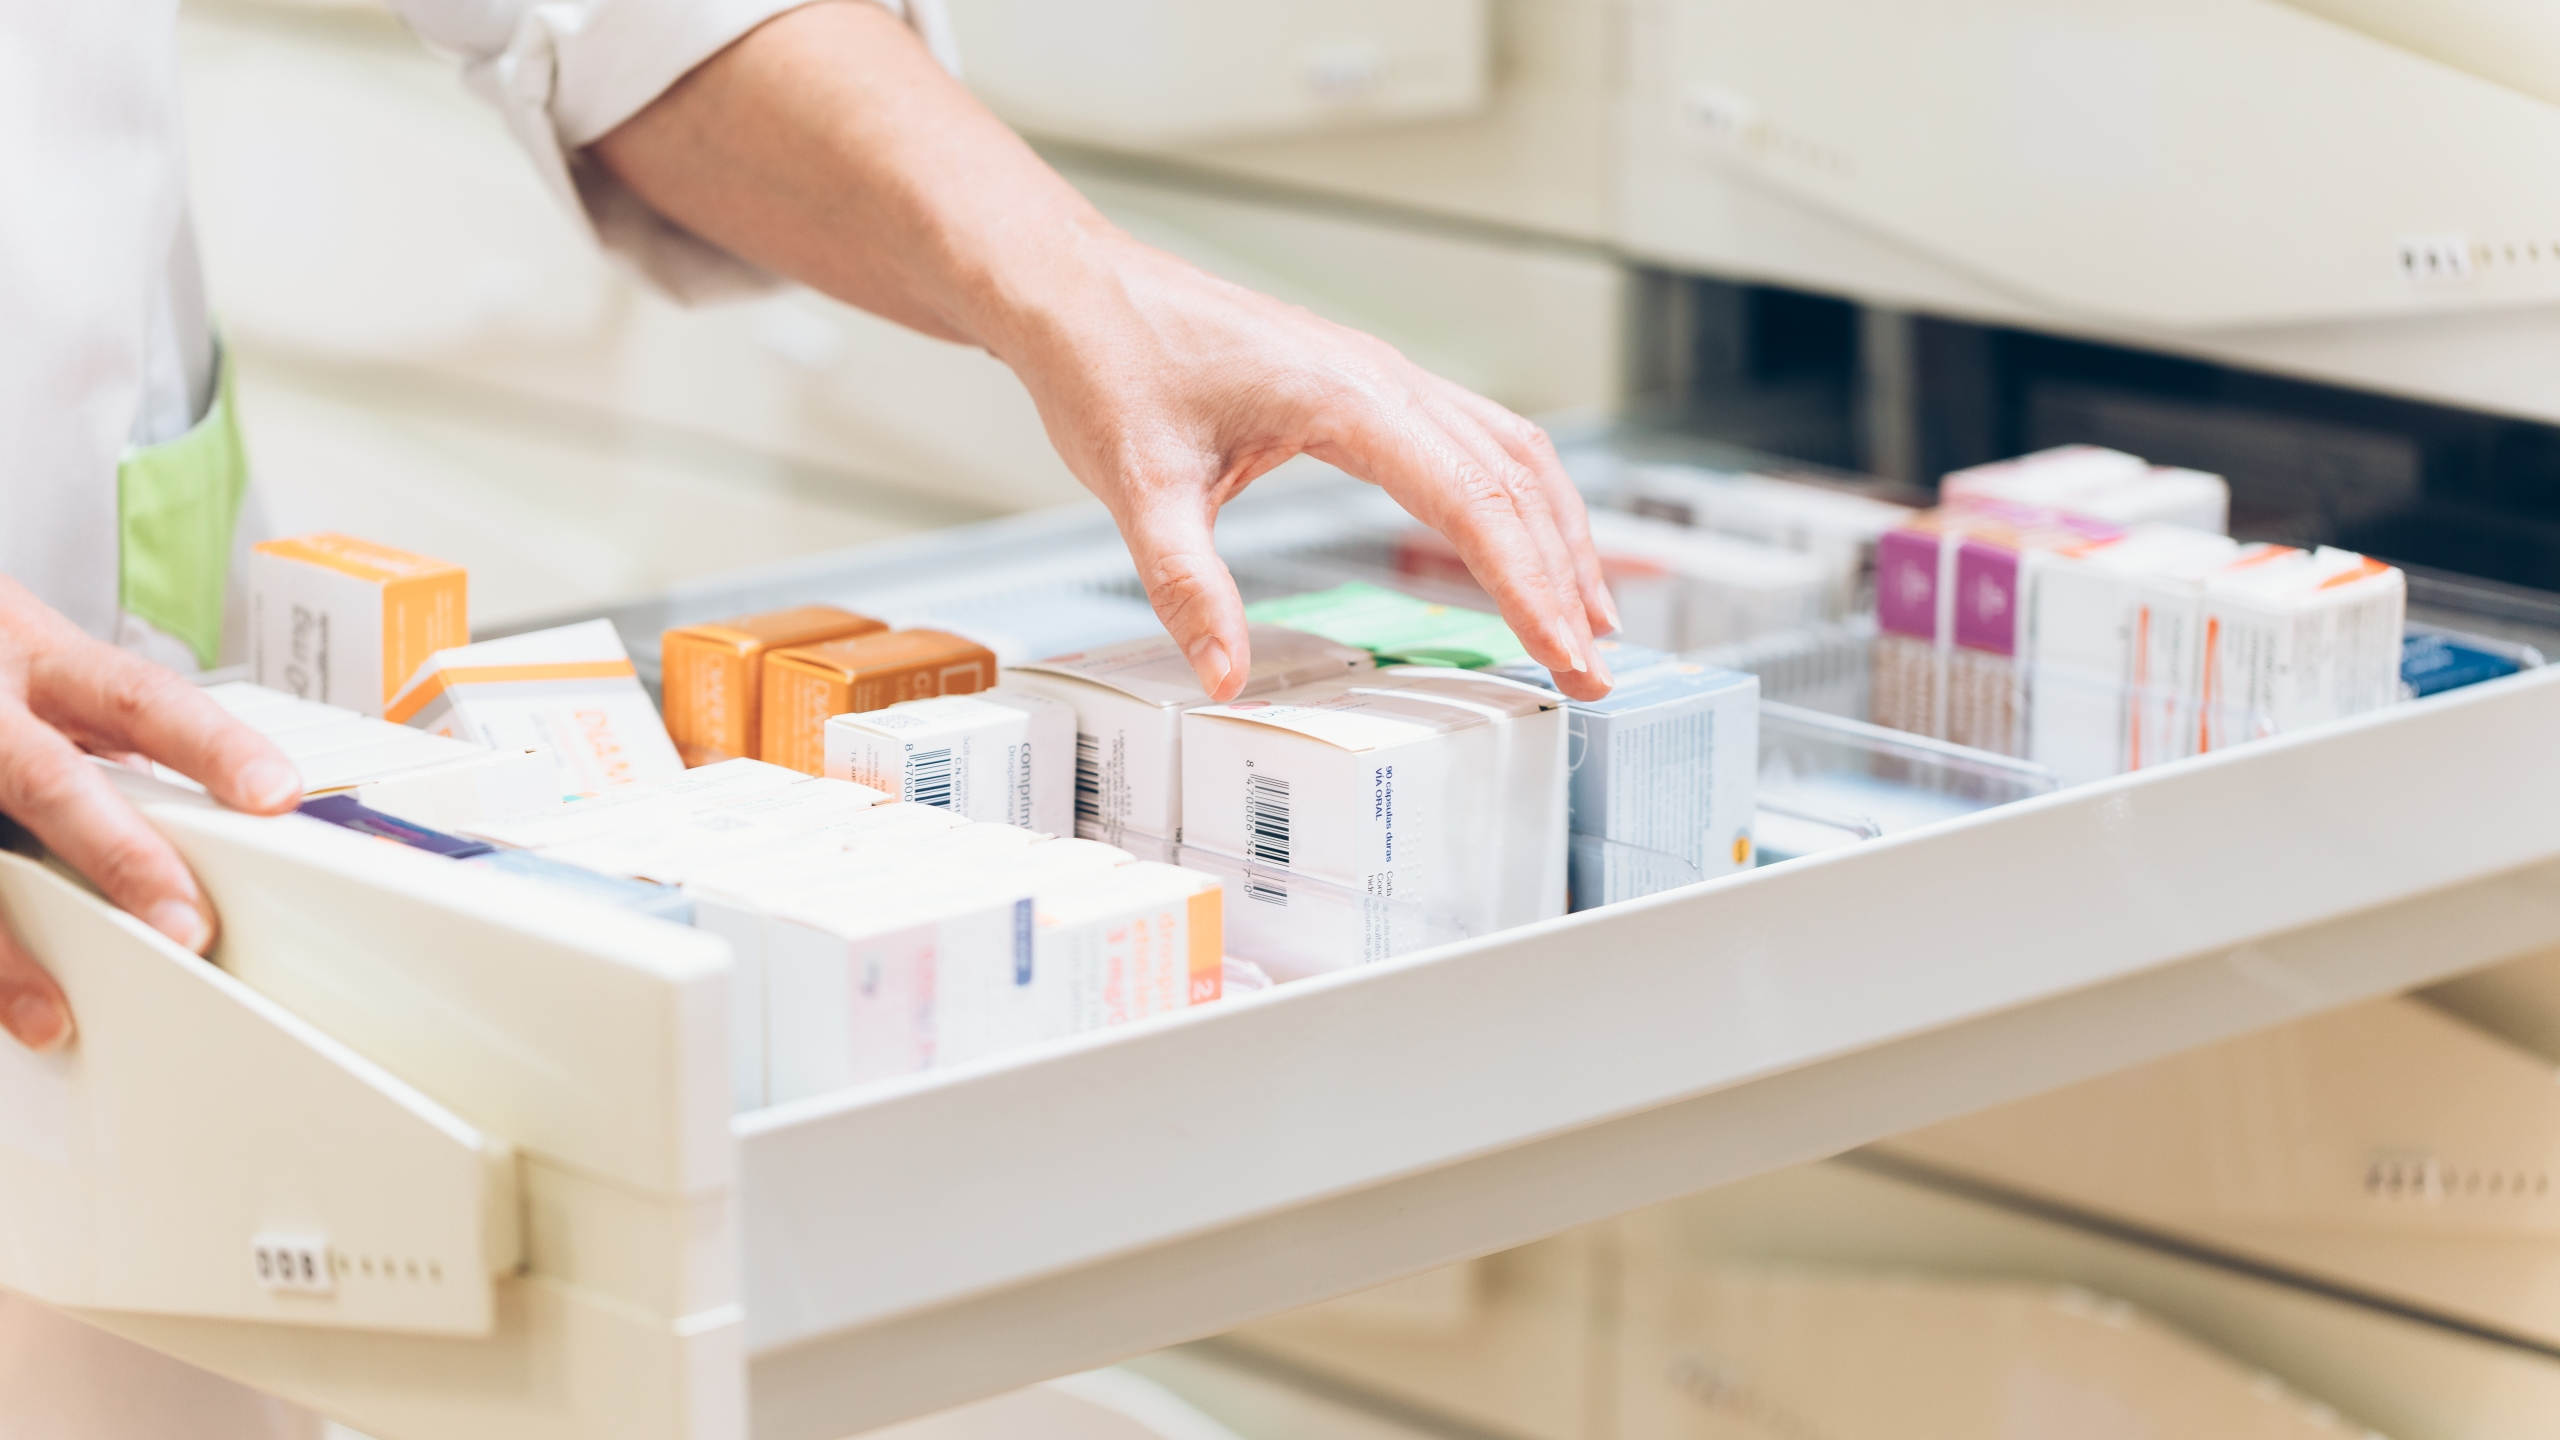 A pharmacist takes medication from a drawer in this undated file photo. (Getty Images)